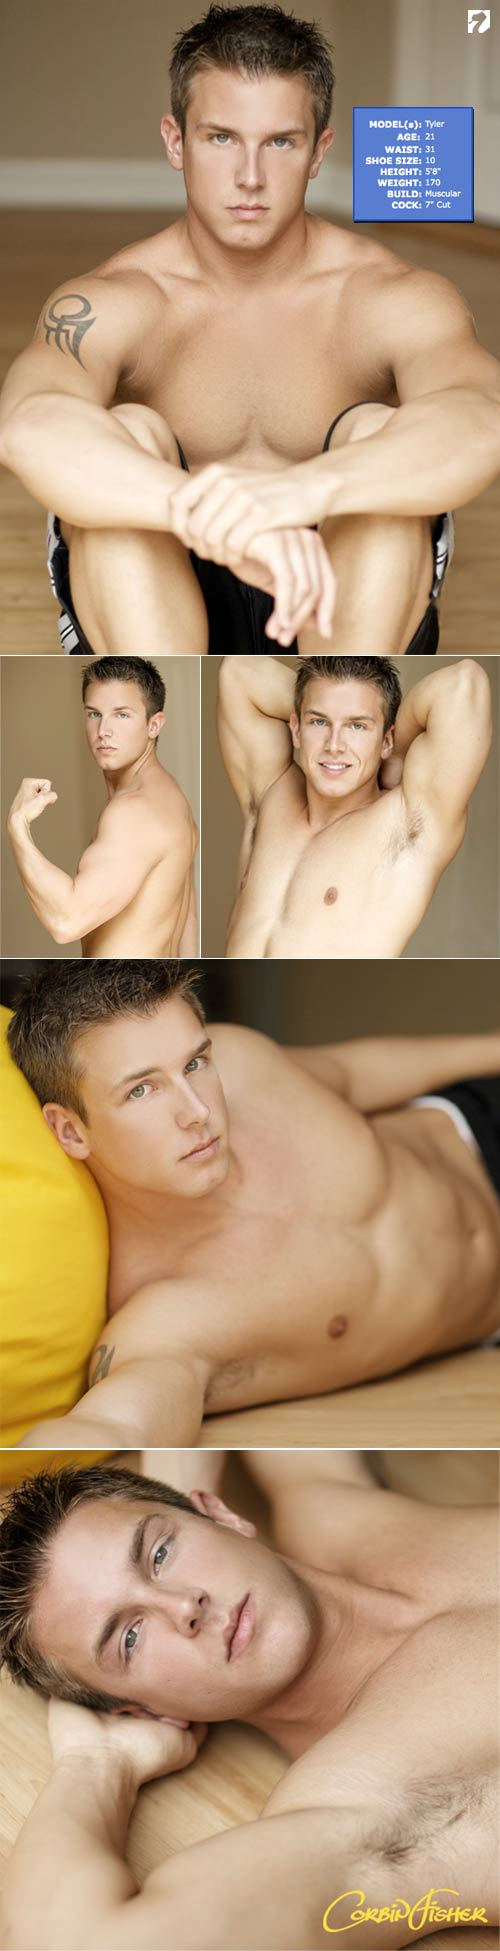 Tyler at CorbinFisher